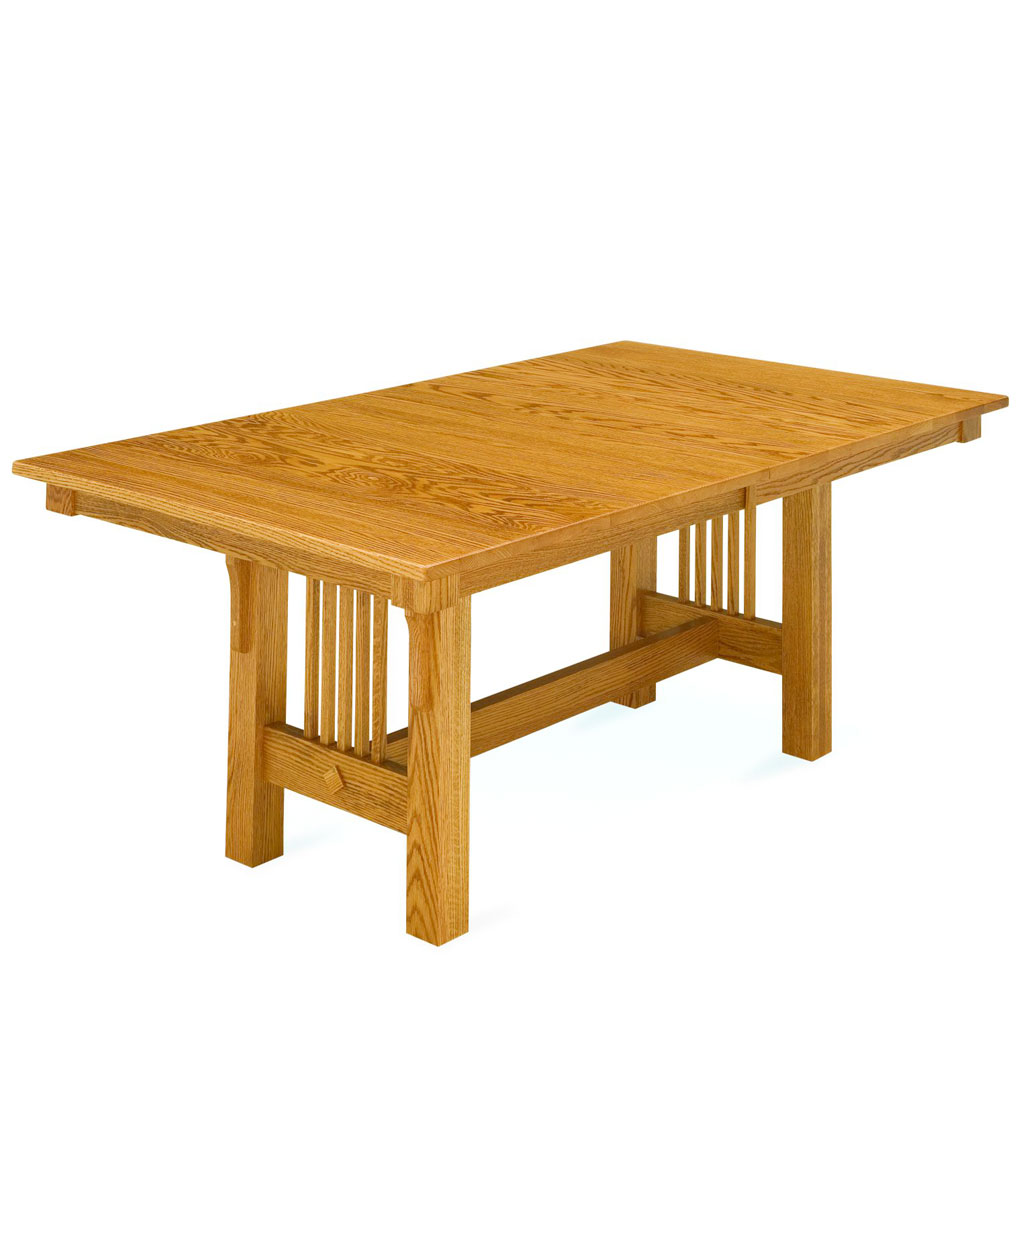 Image Result For Cherry Wood Dining Room Table And Chairs